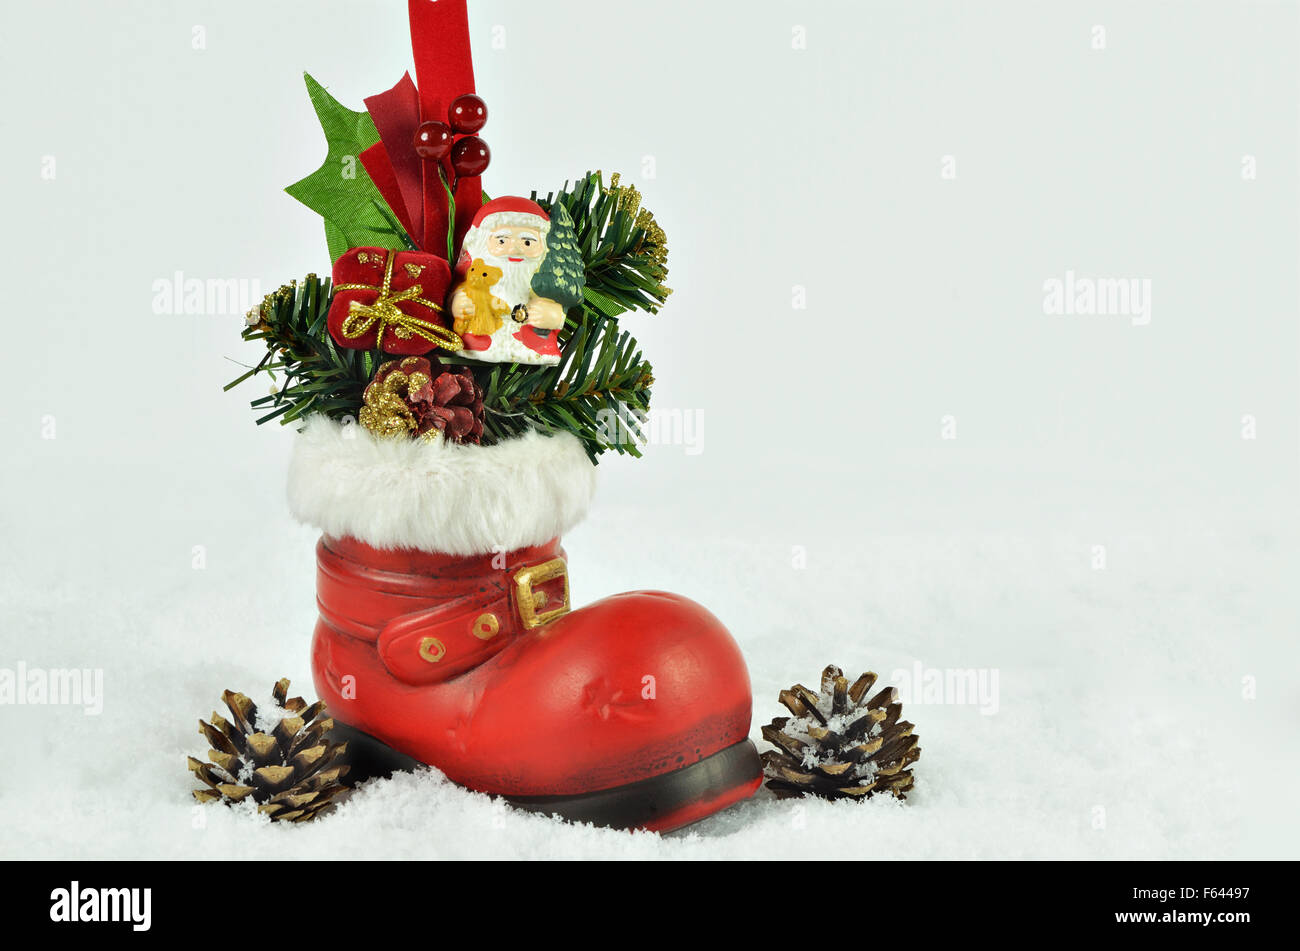 santa claus with fir sprigs inside a red boot with white fur